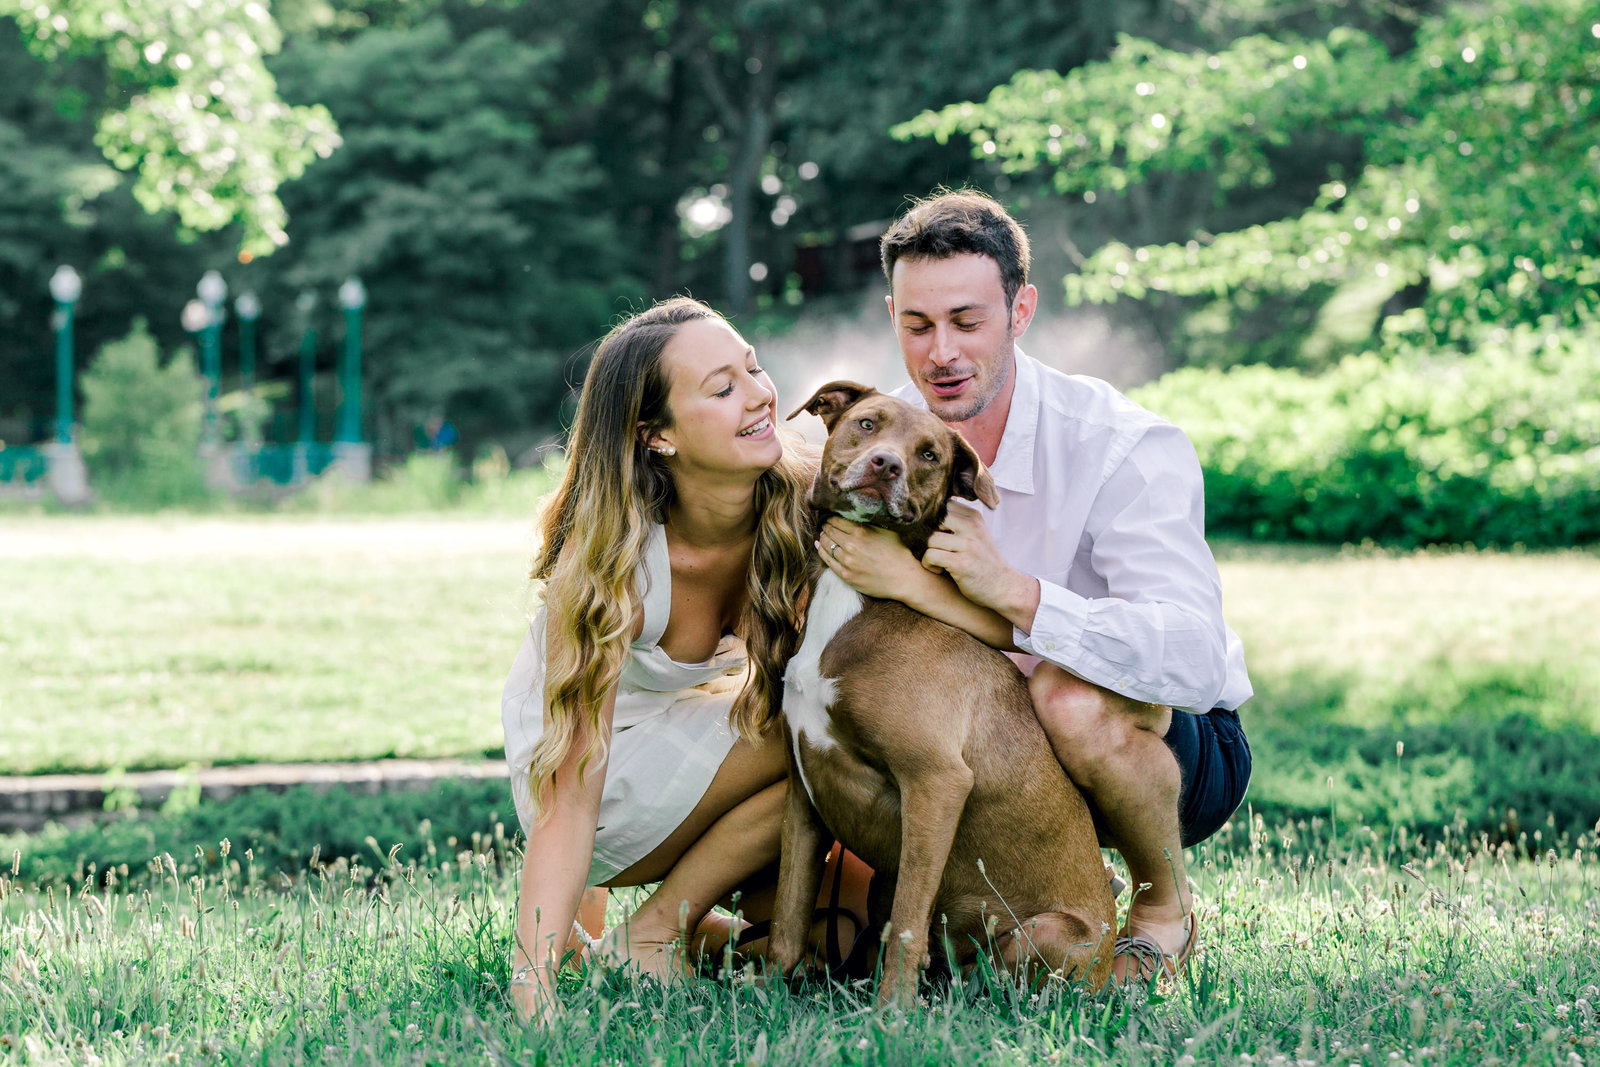 riger williams park engagement photos with dog